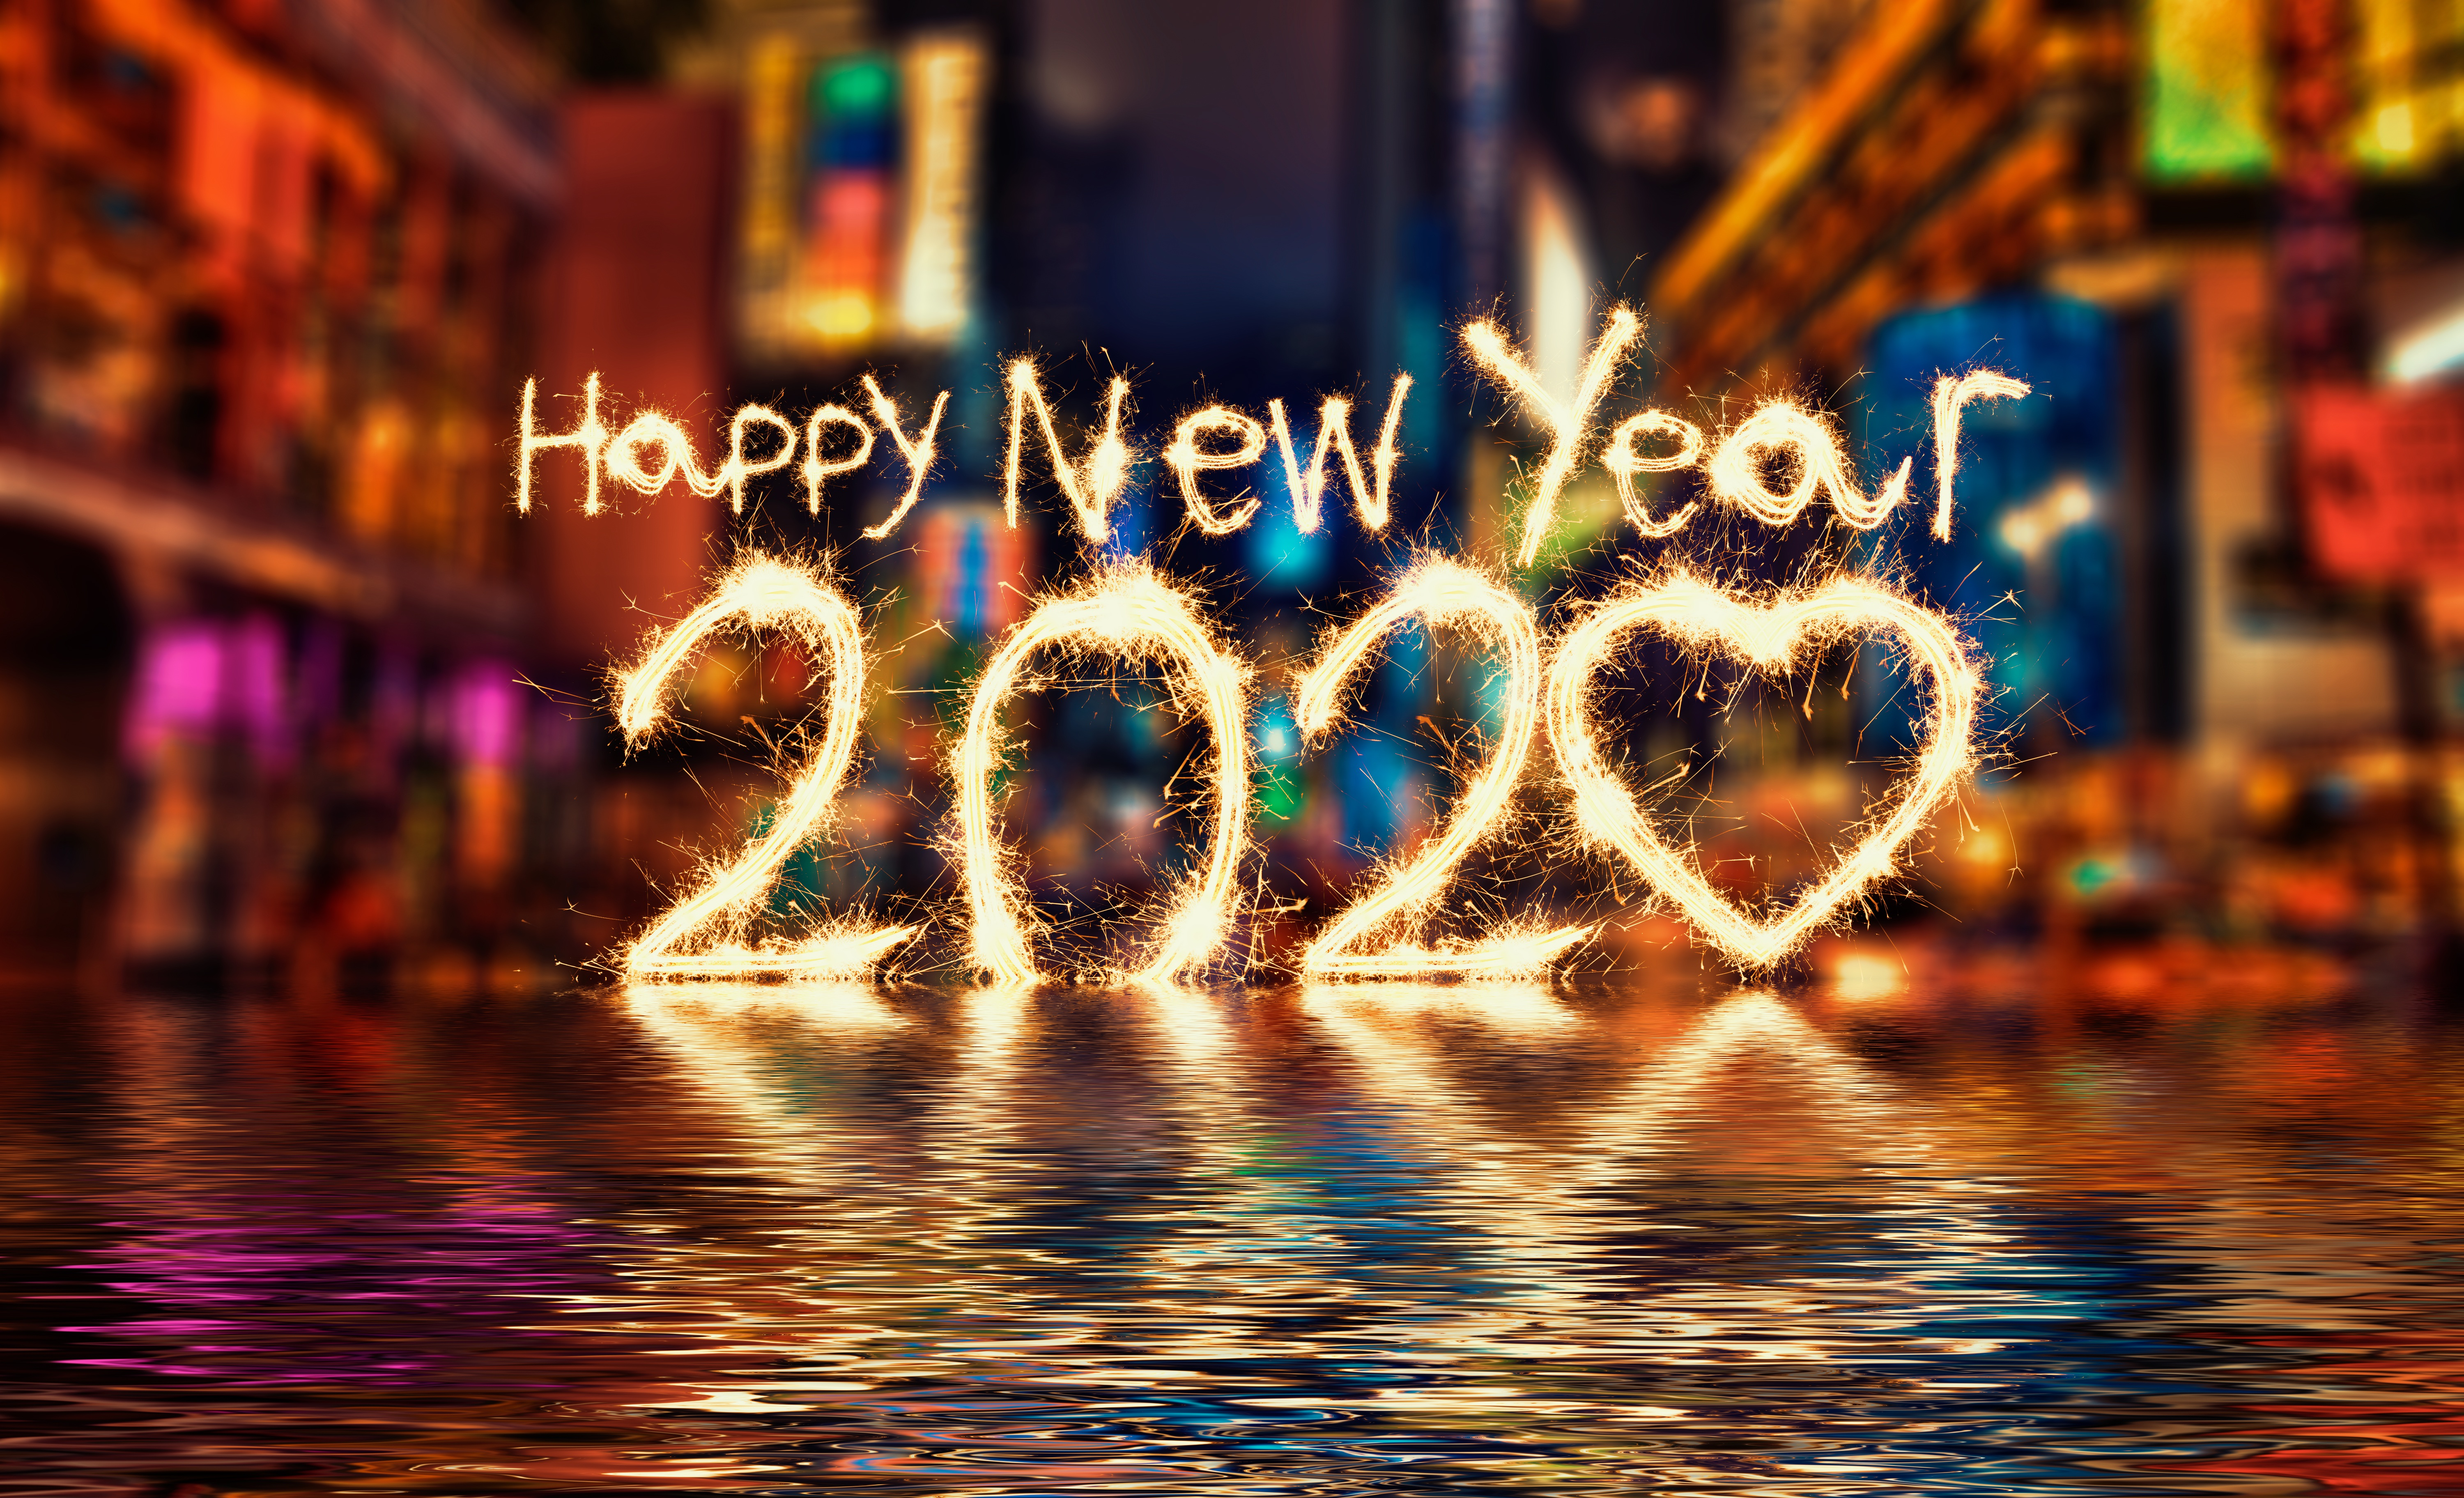 Colorful New Year Wallpaper 5k Retina Ultra Hd Wallpaper